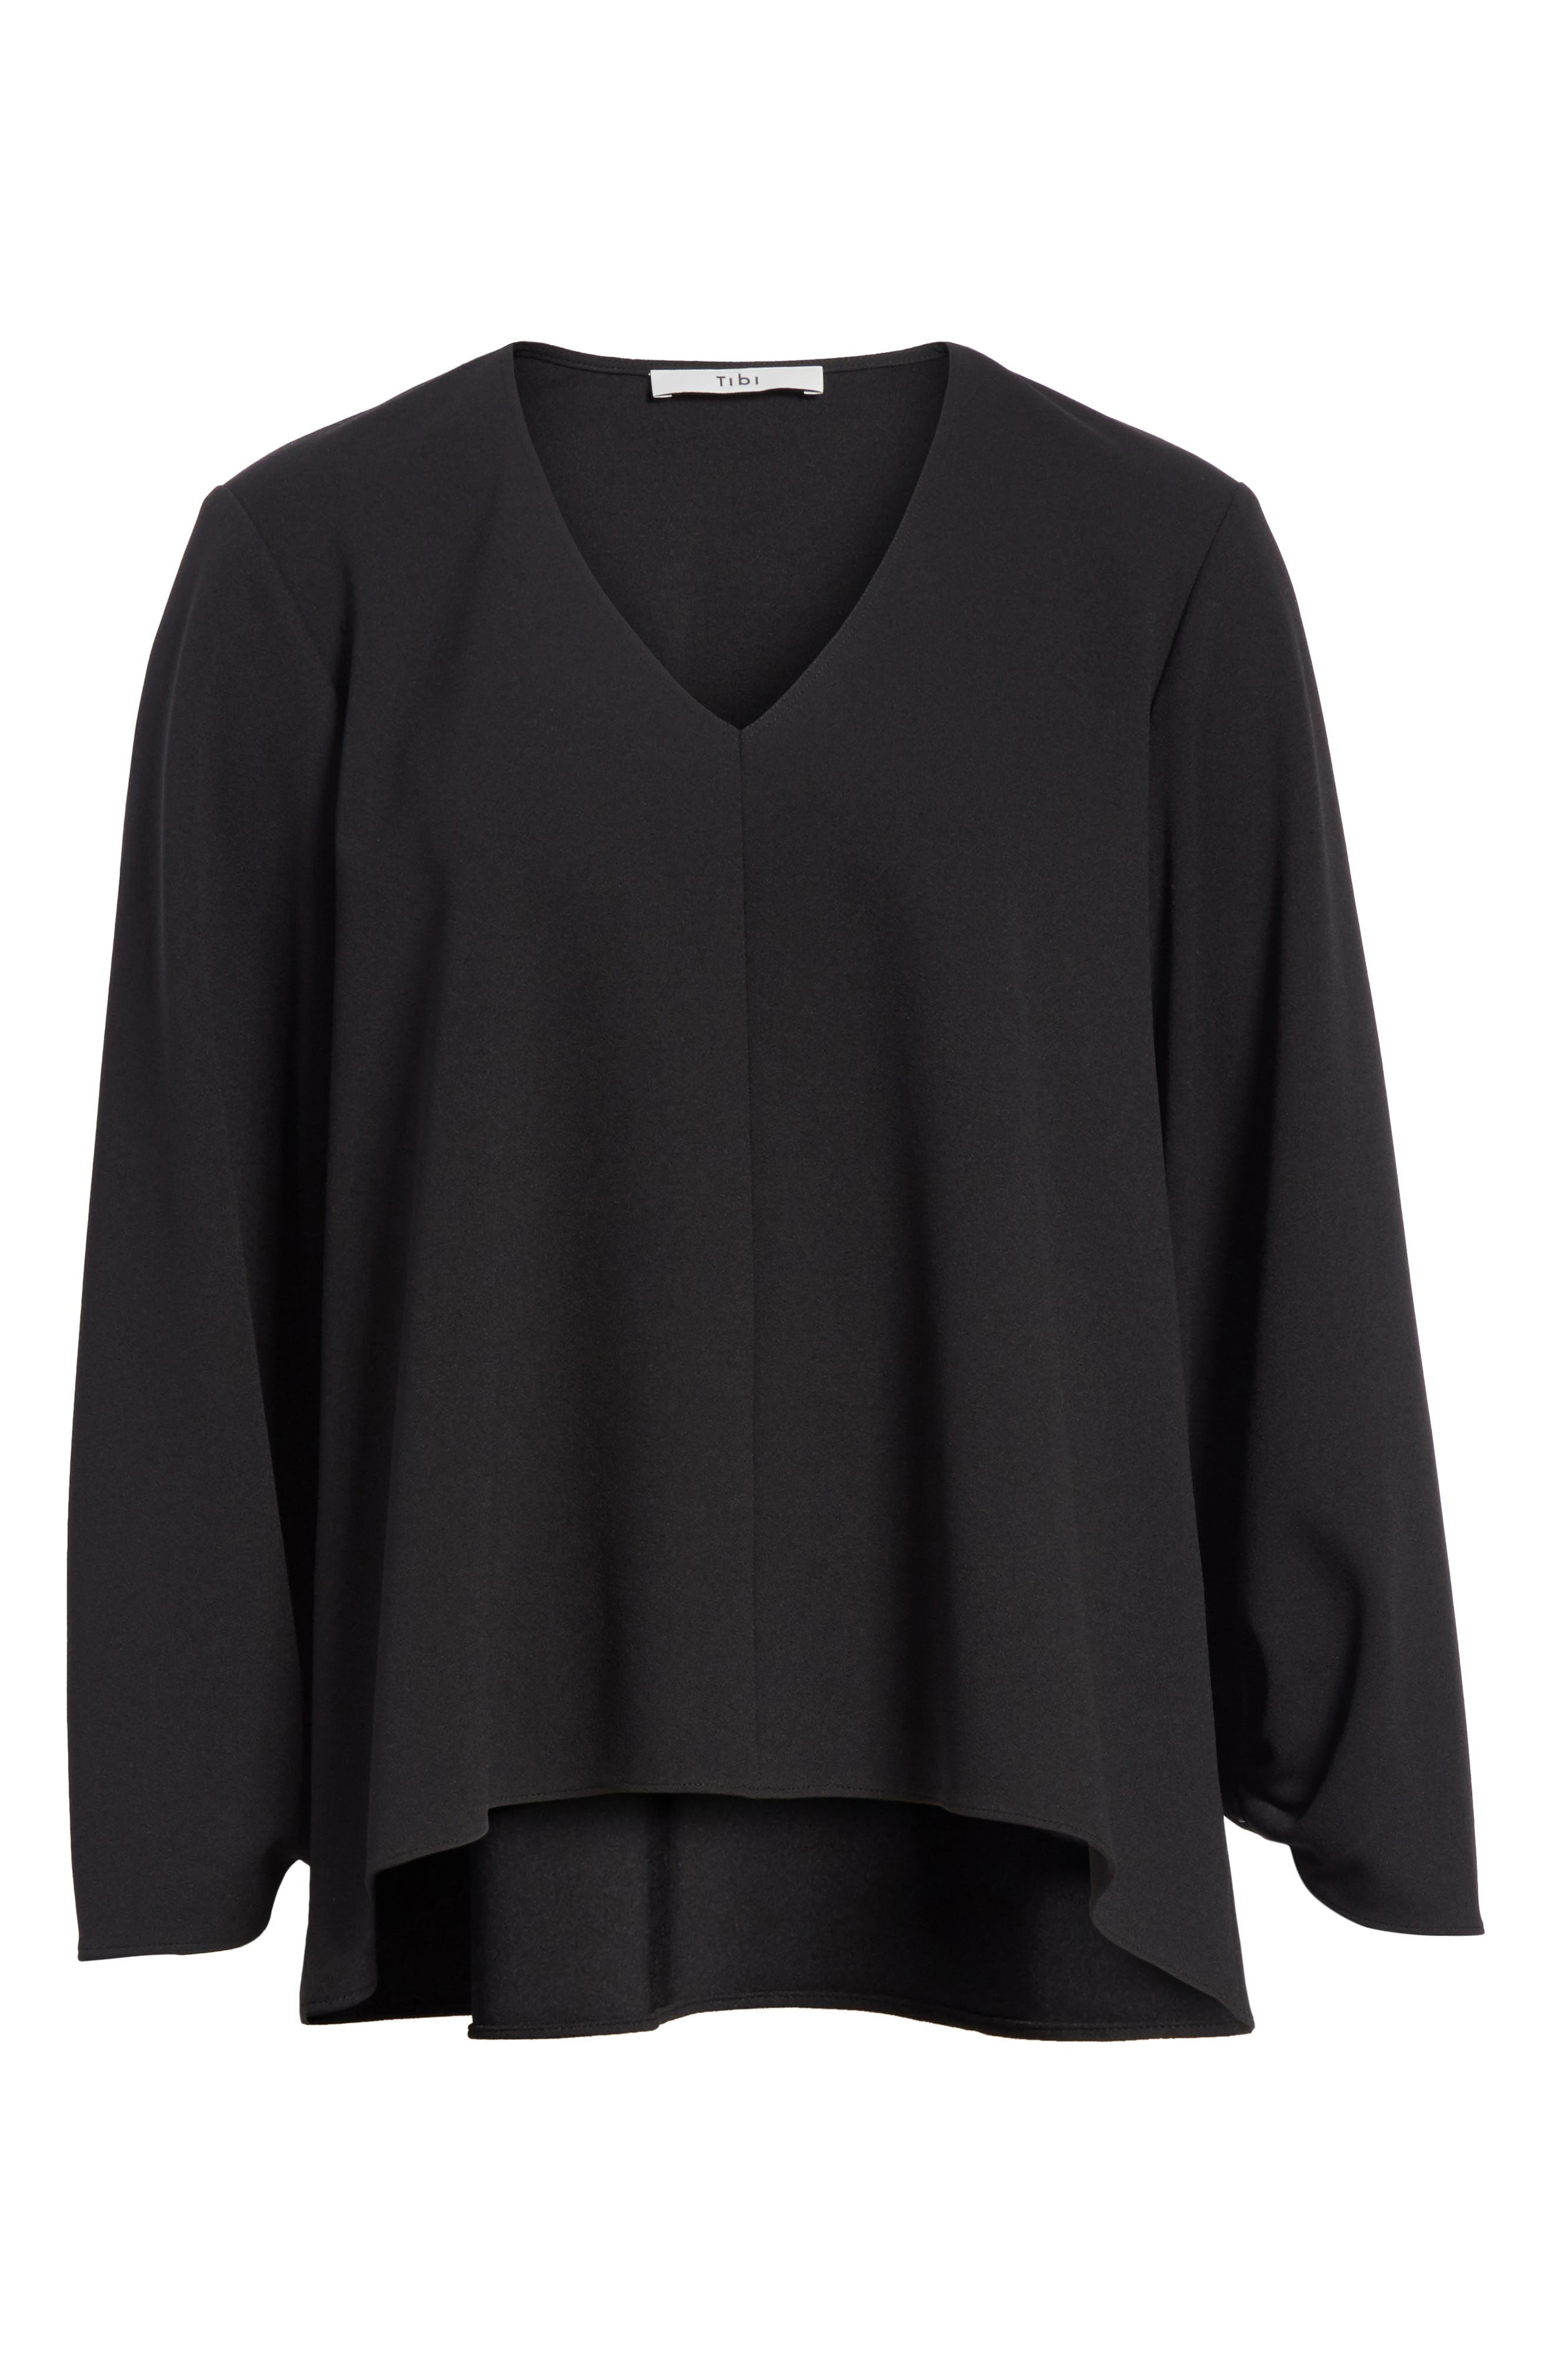 Cinched Sleeve Top,                             Alternate thumbnail 6, color,                             Black